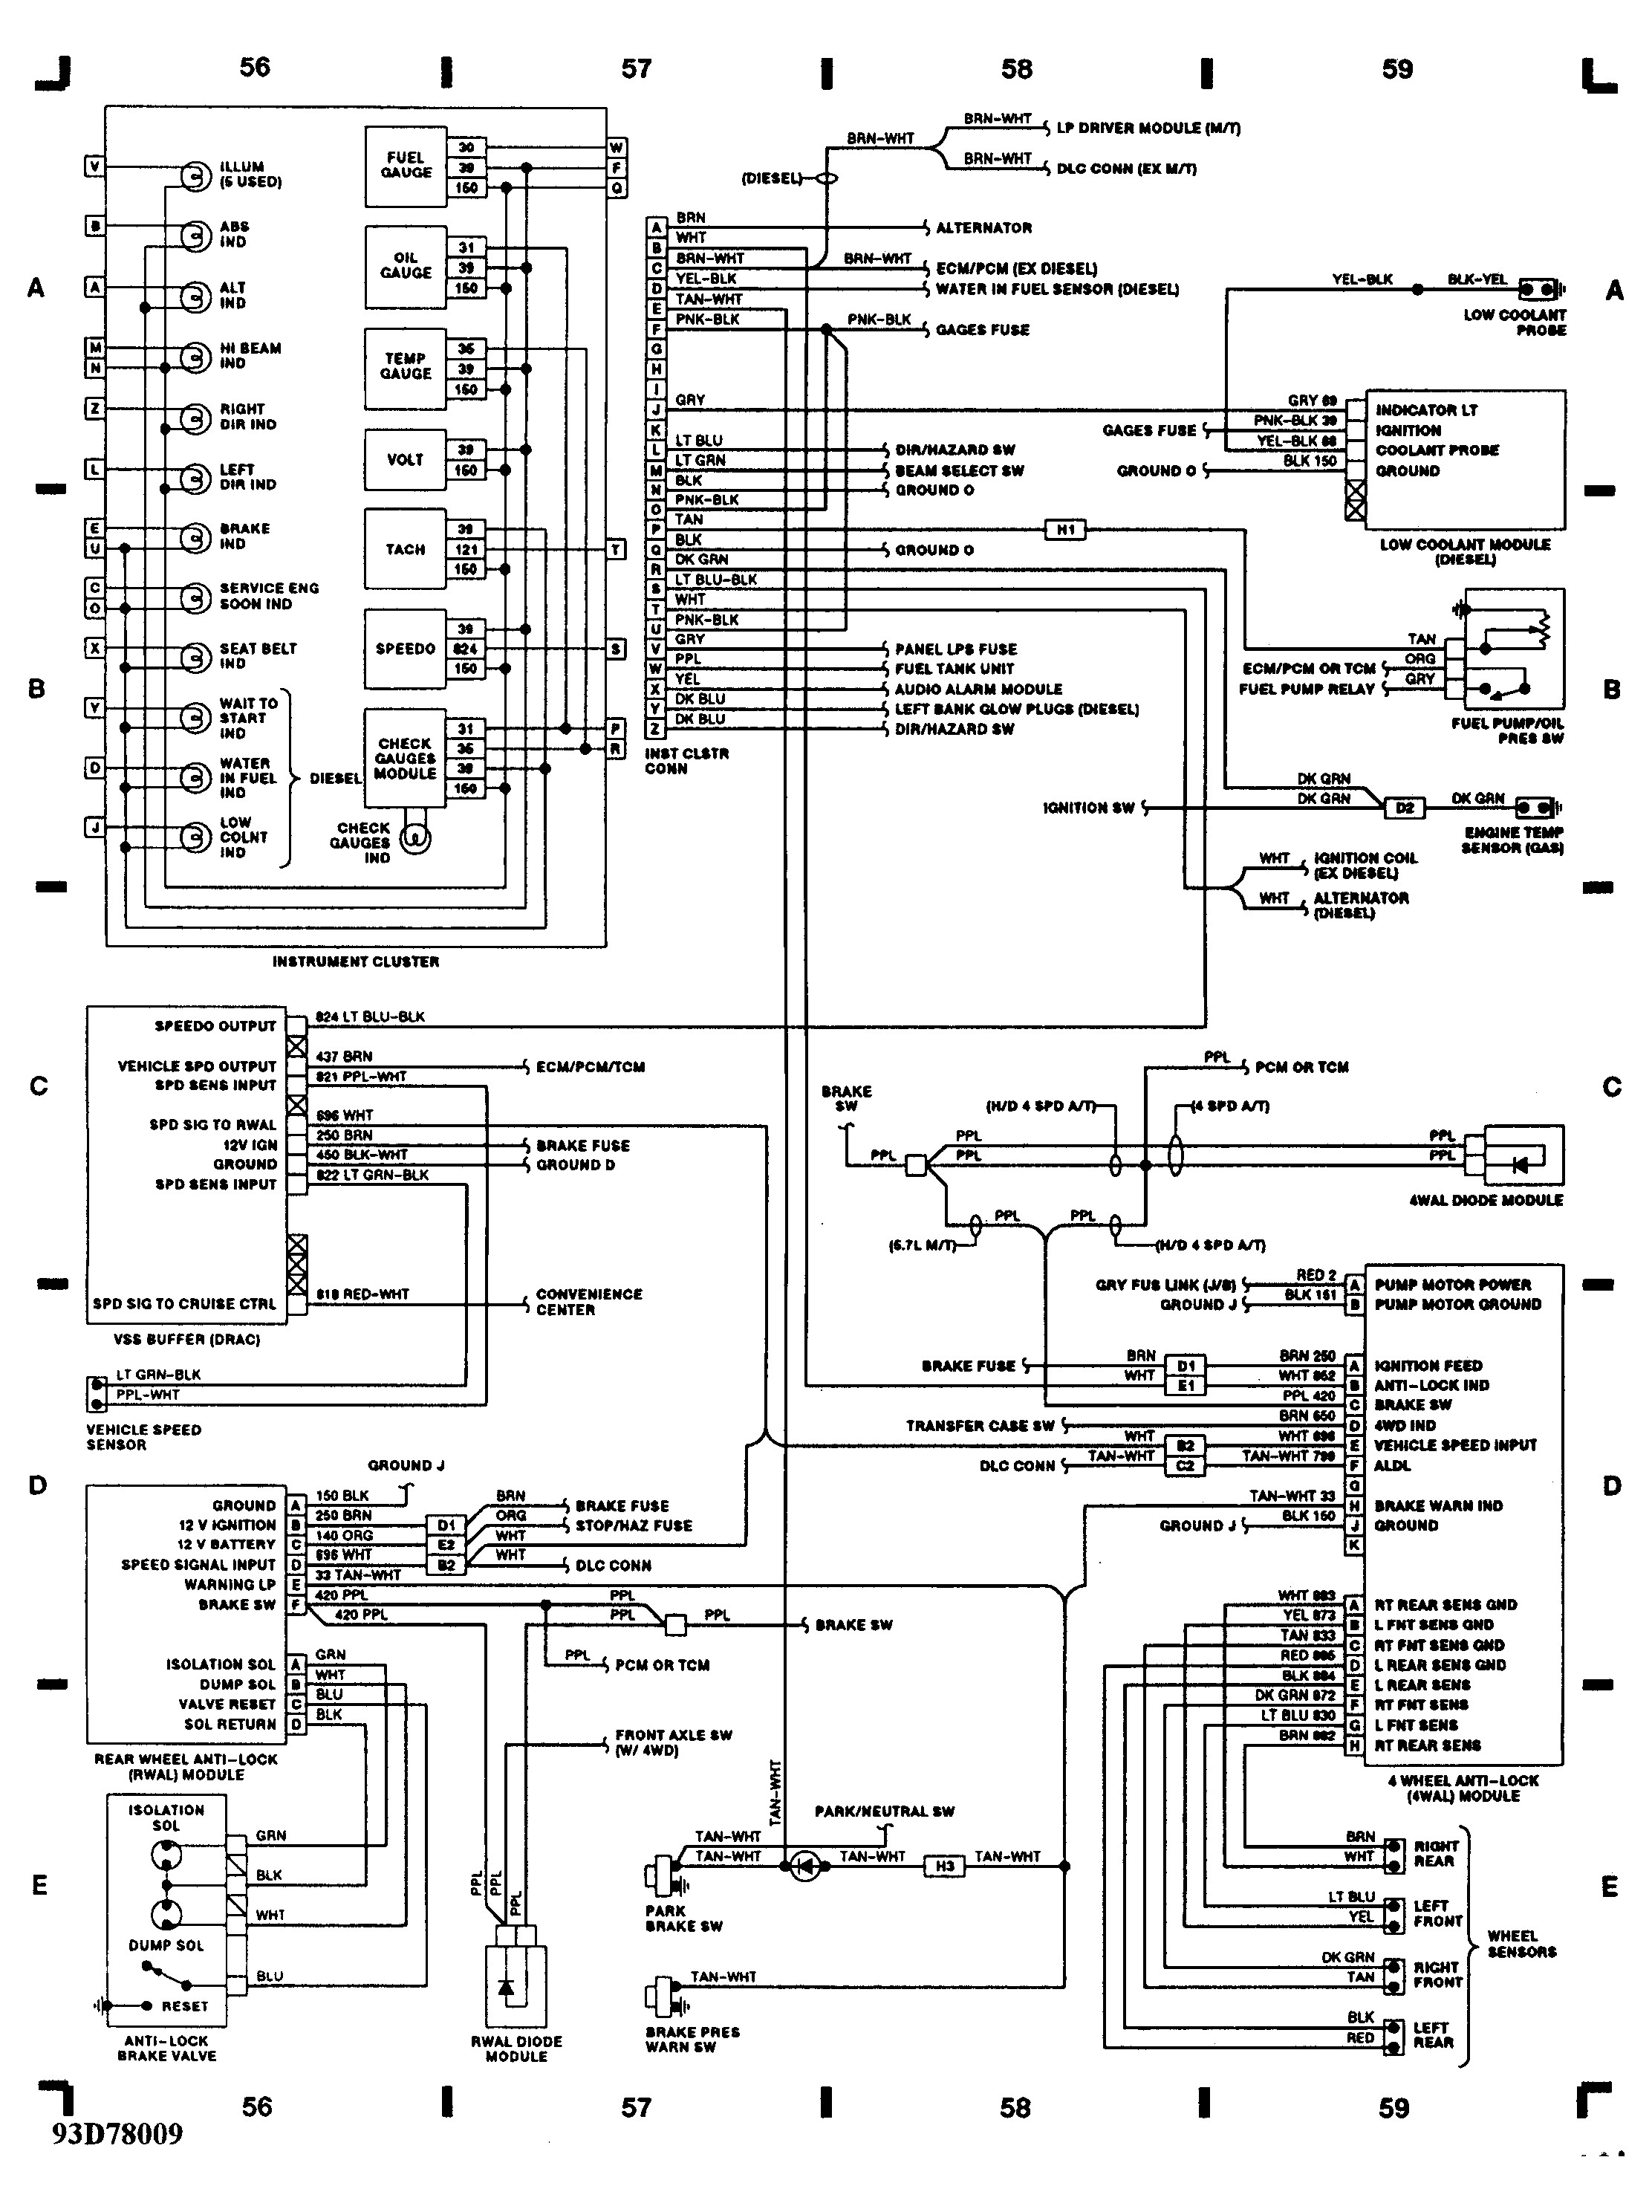 fan hub 3126 caterpillar engine diagram cat 3126 ecm wiring diagram | free wiring diagram #2